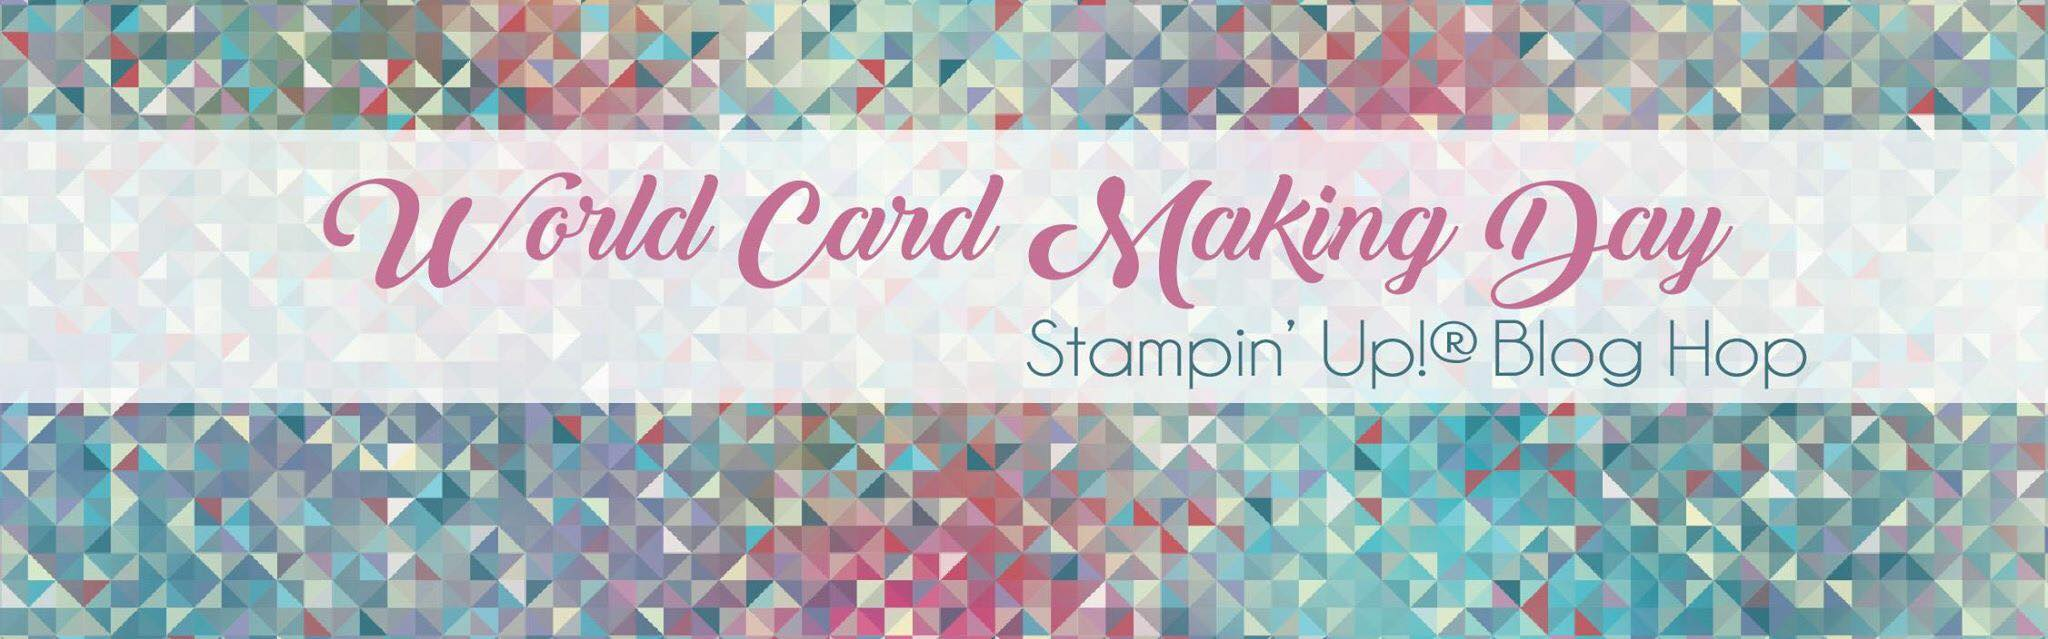 world-cardmaking-day-blog-hop